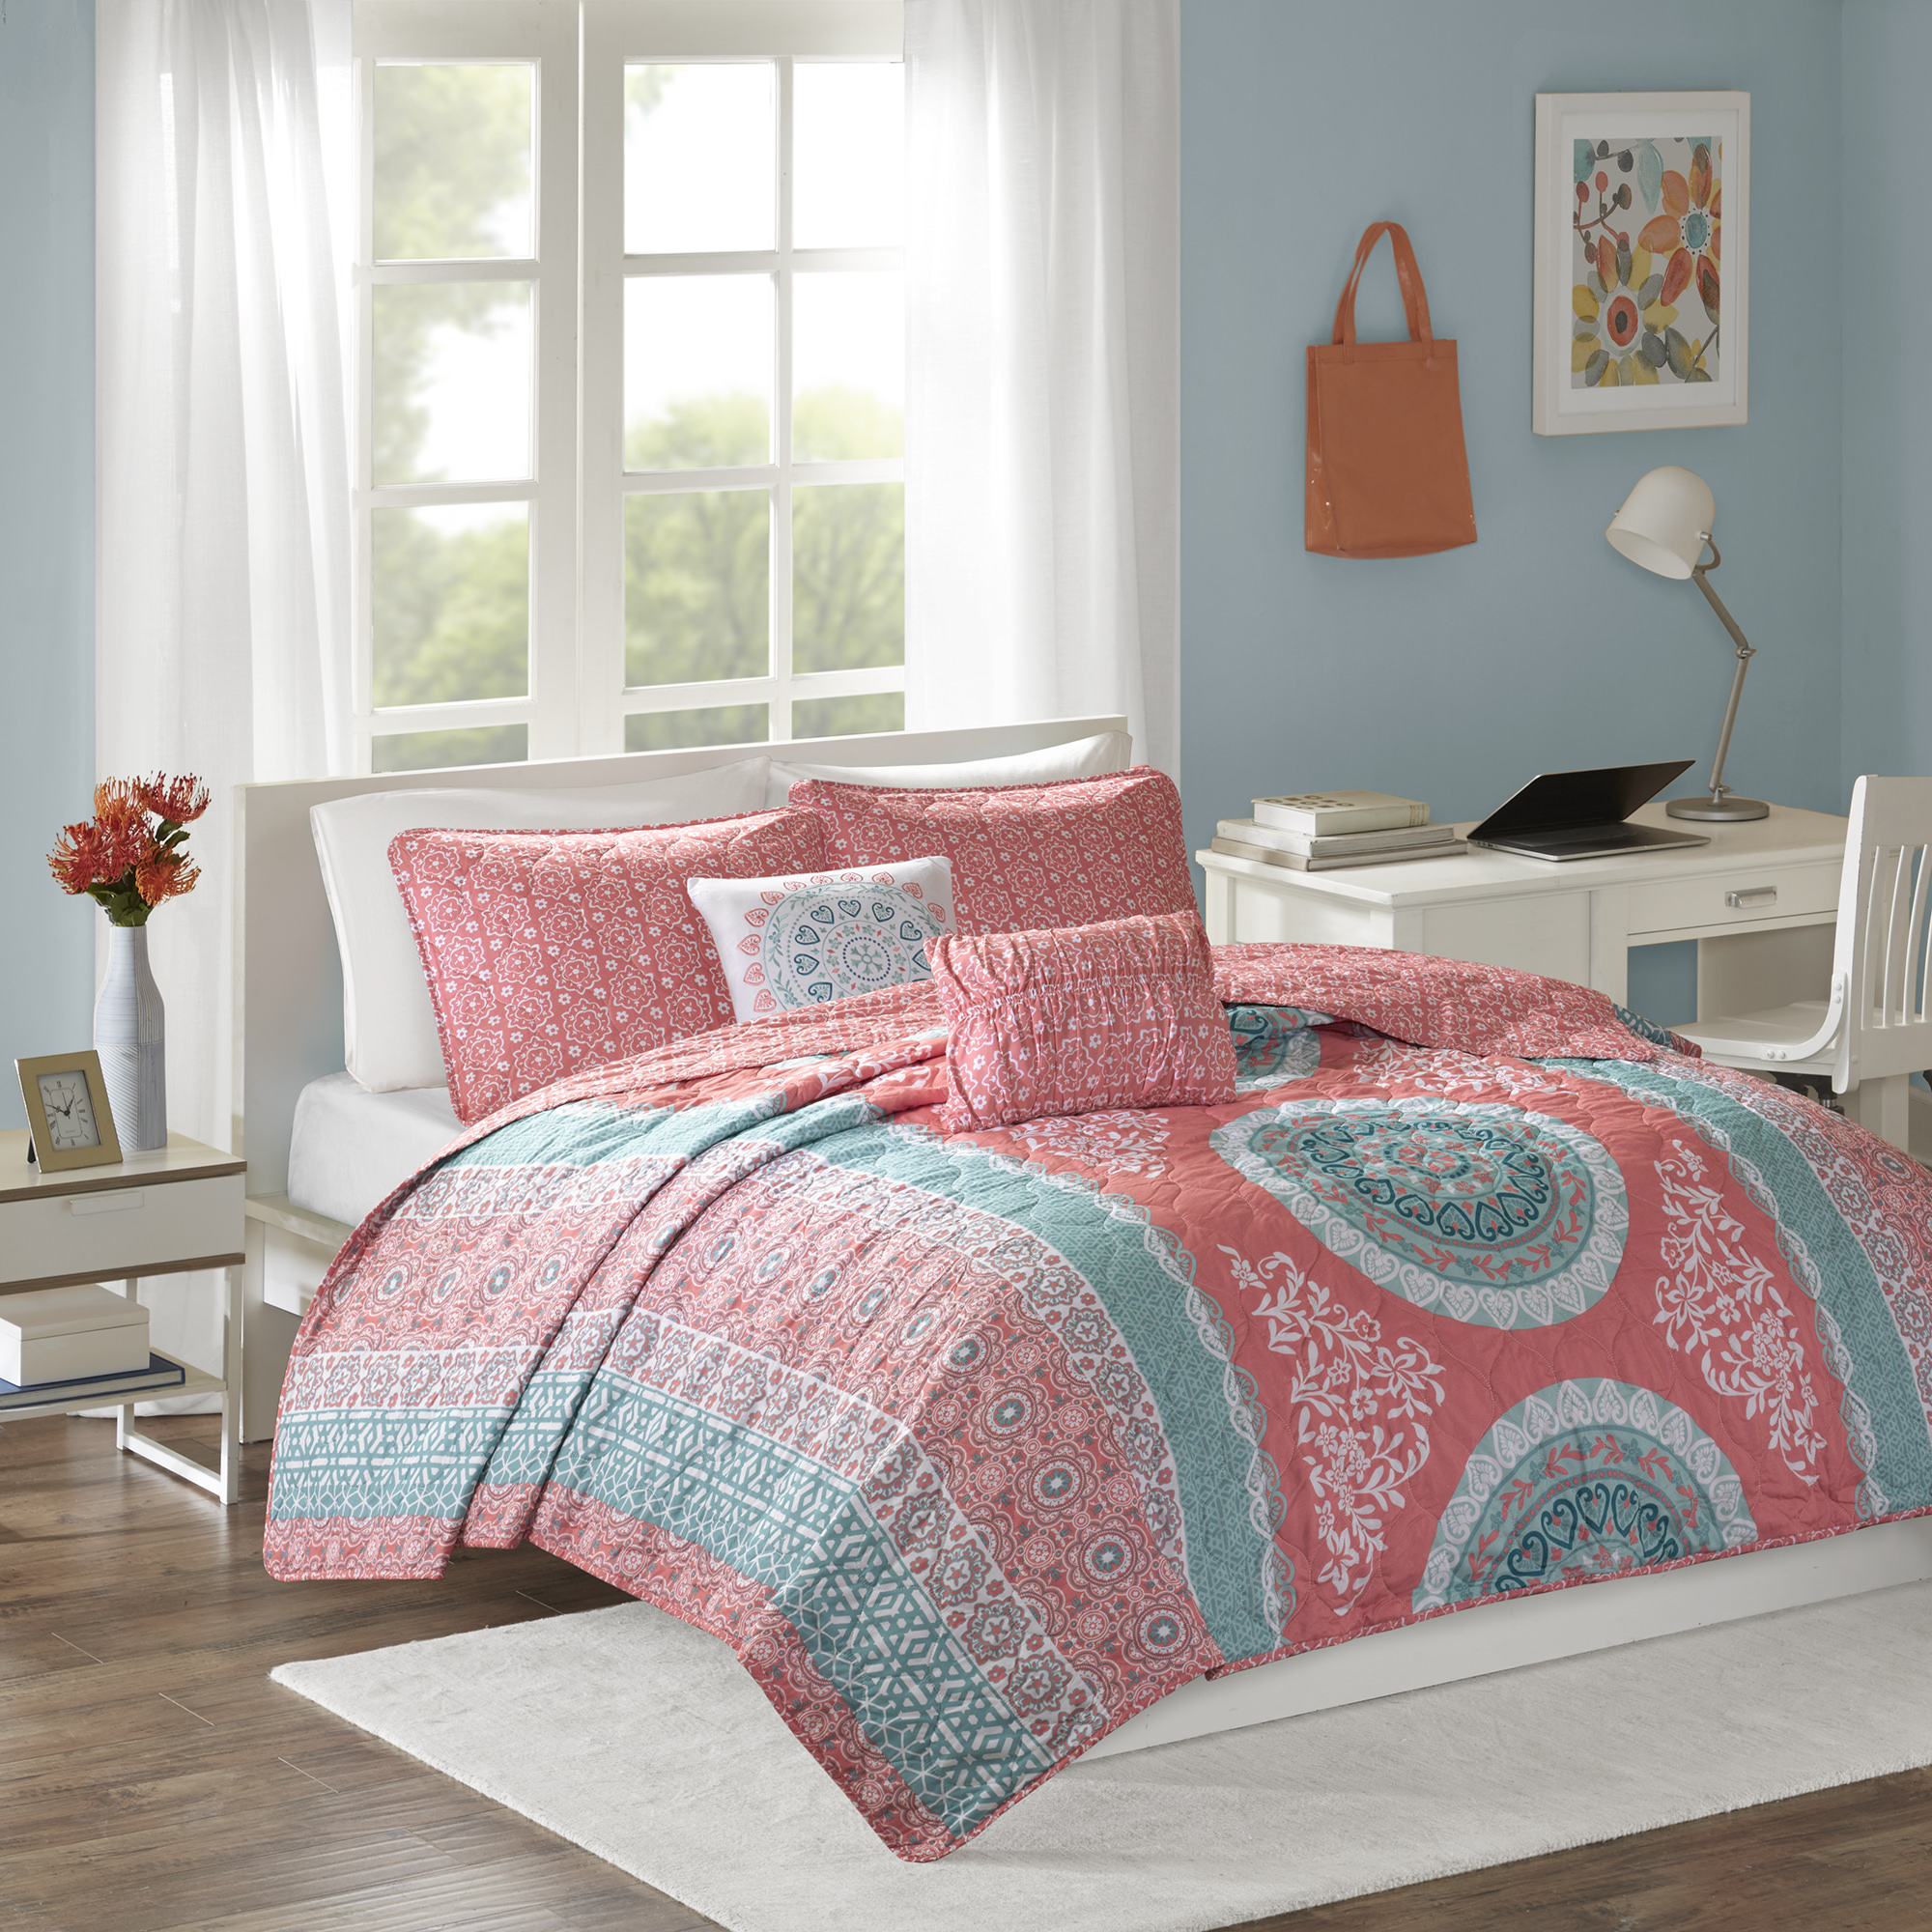 Home Essence Apartment Blaire Quilted Reversible Coverlet Set by E&E Co. Ltd